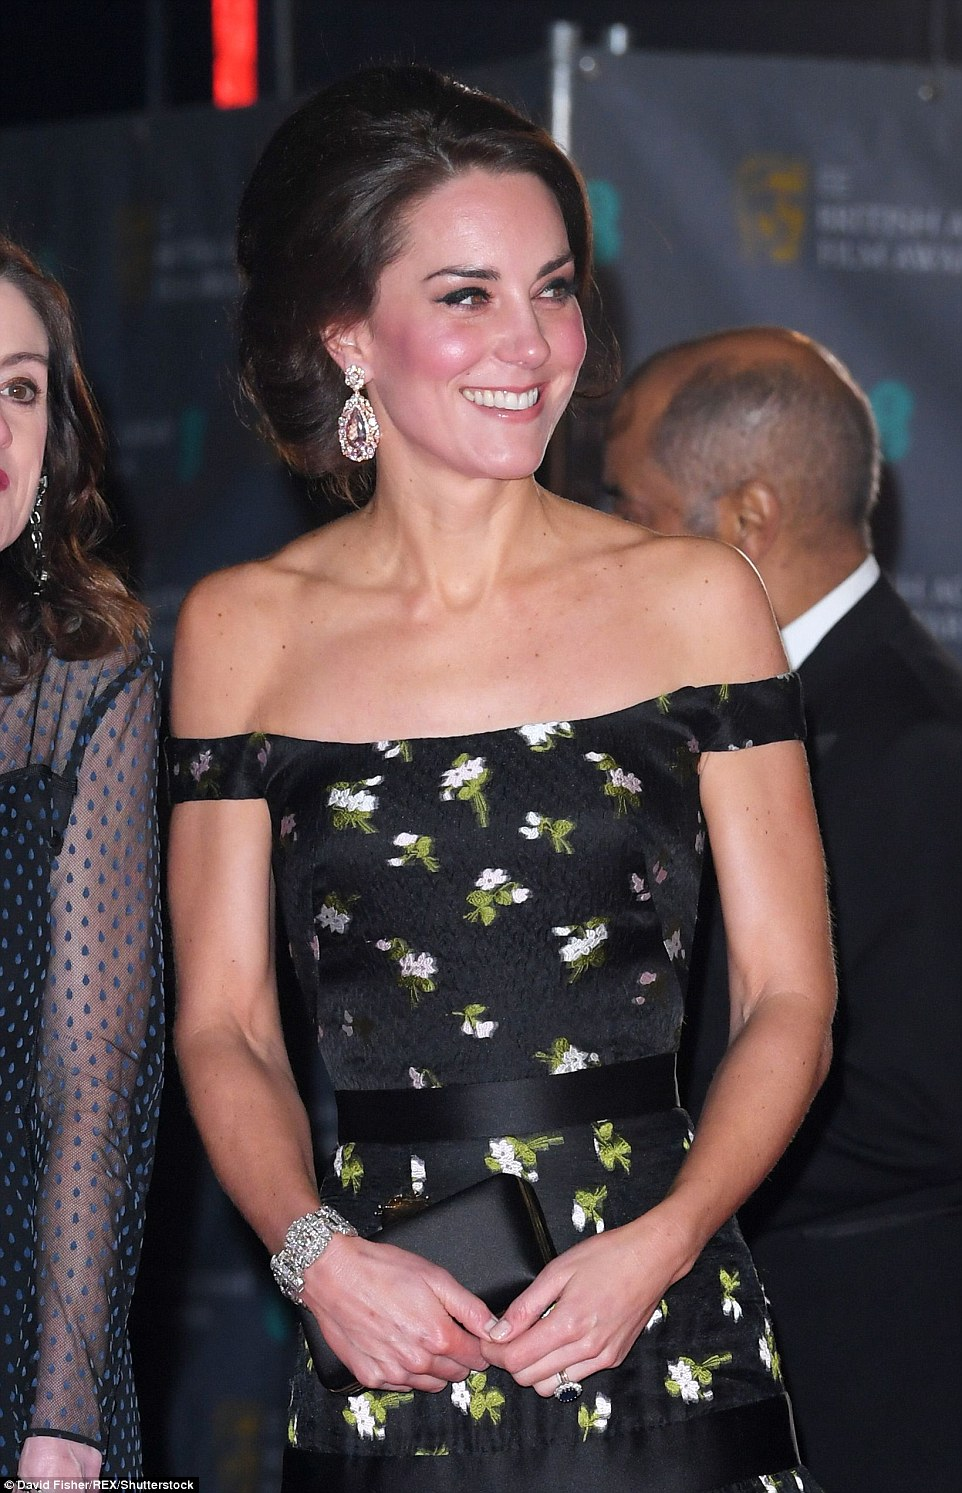 Kate Middleton in Alexander McQueen Dress at BAFTA Awards 2017